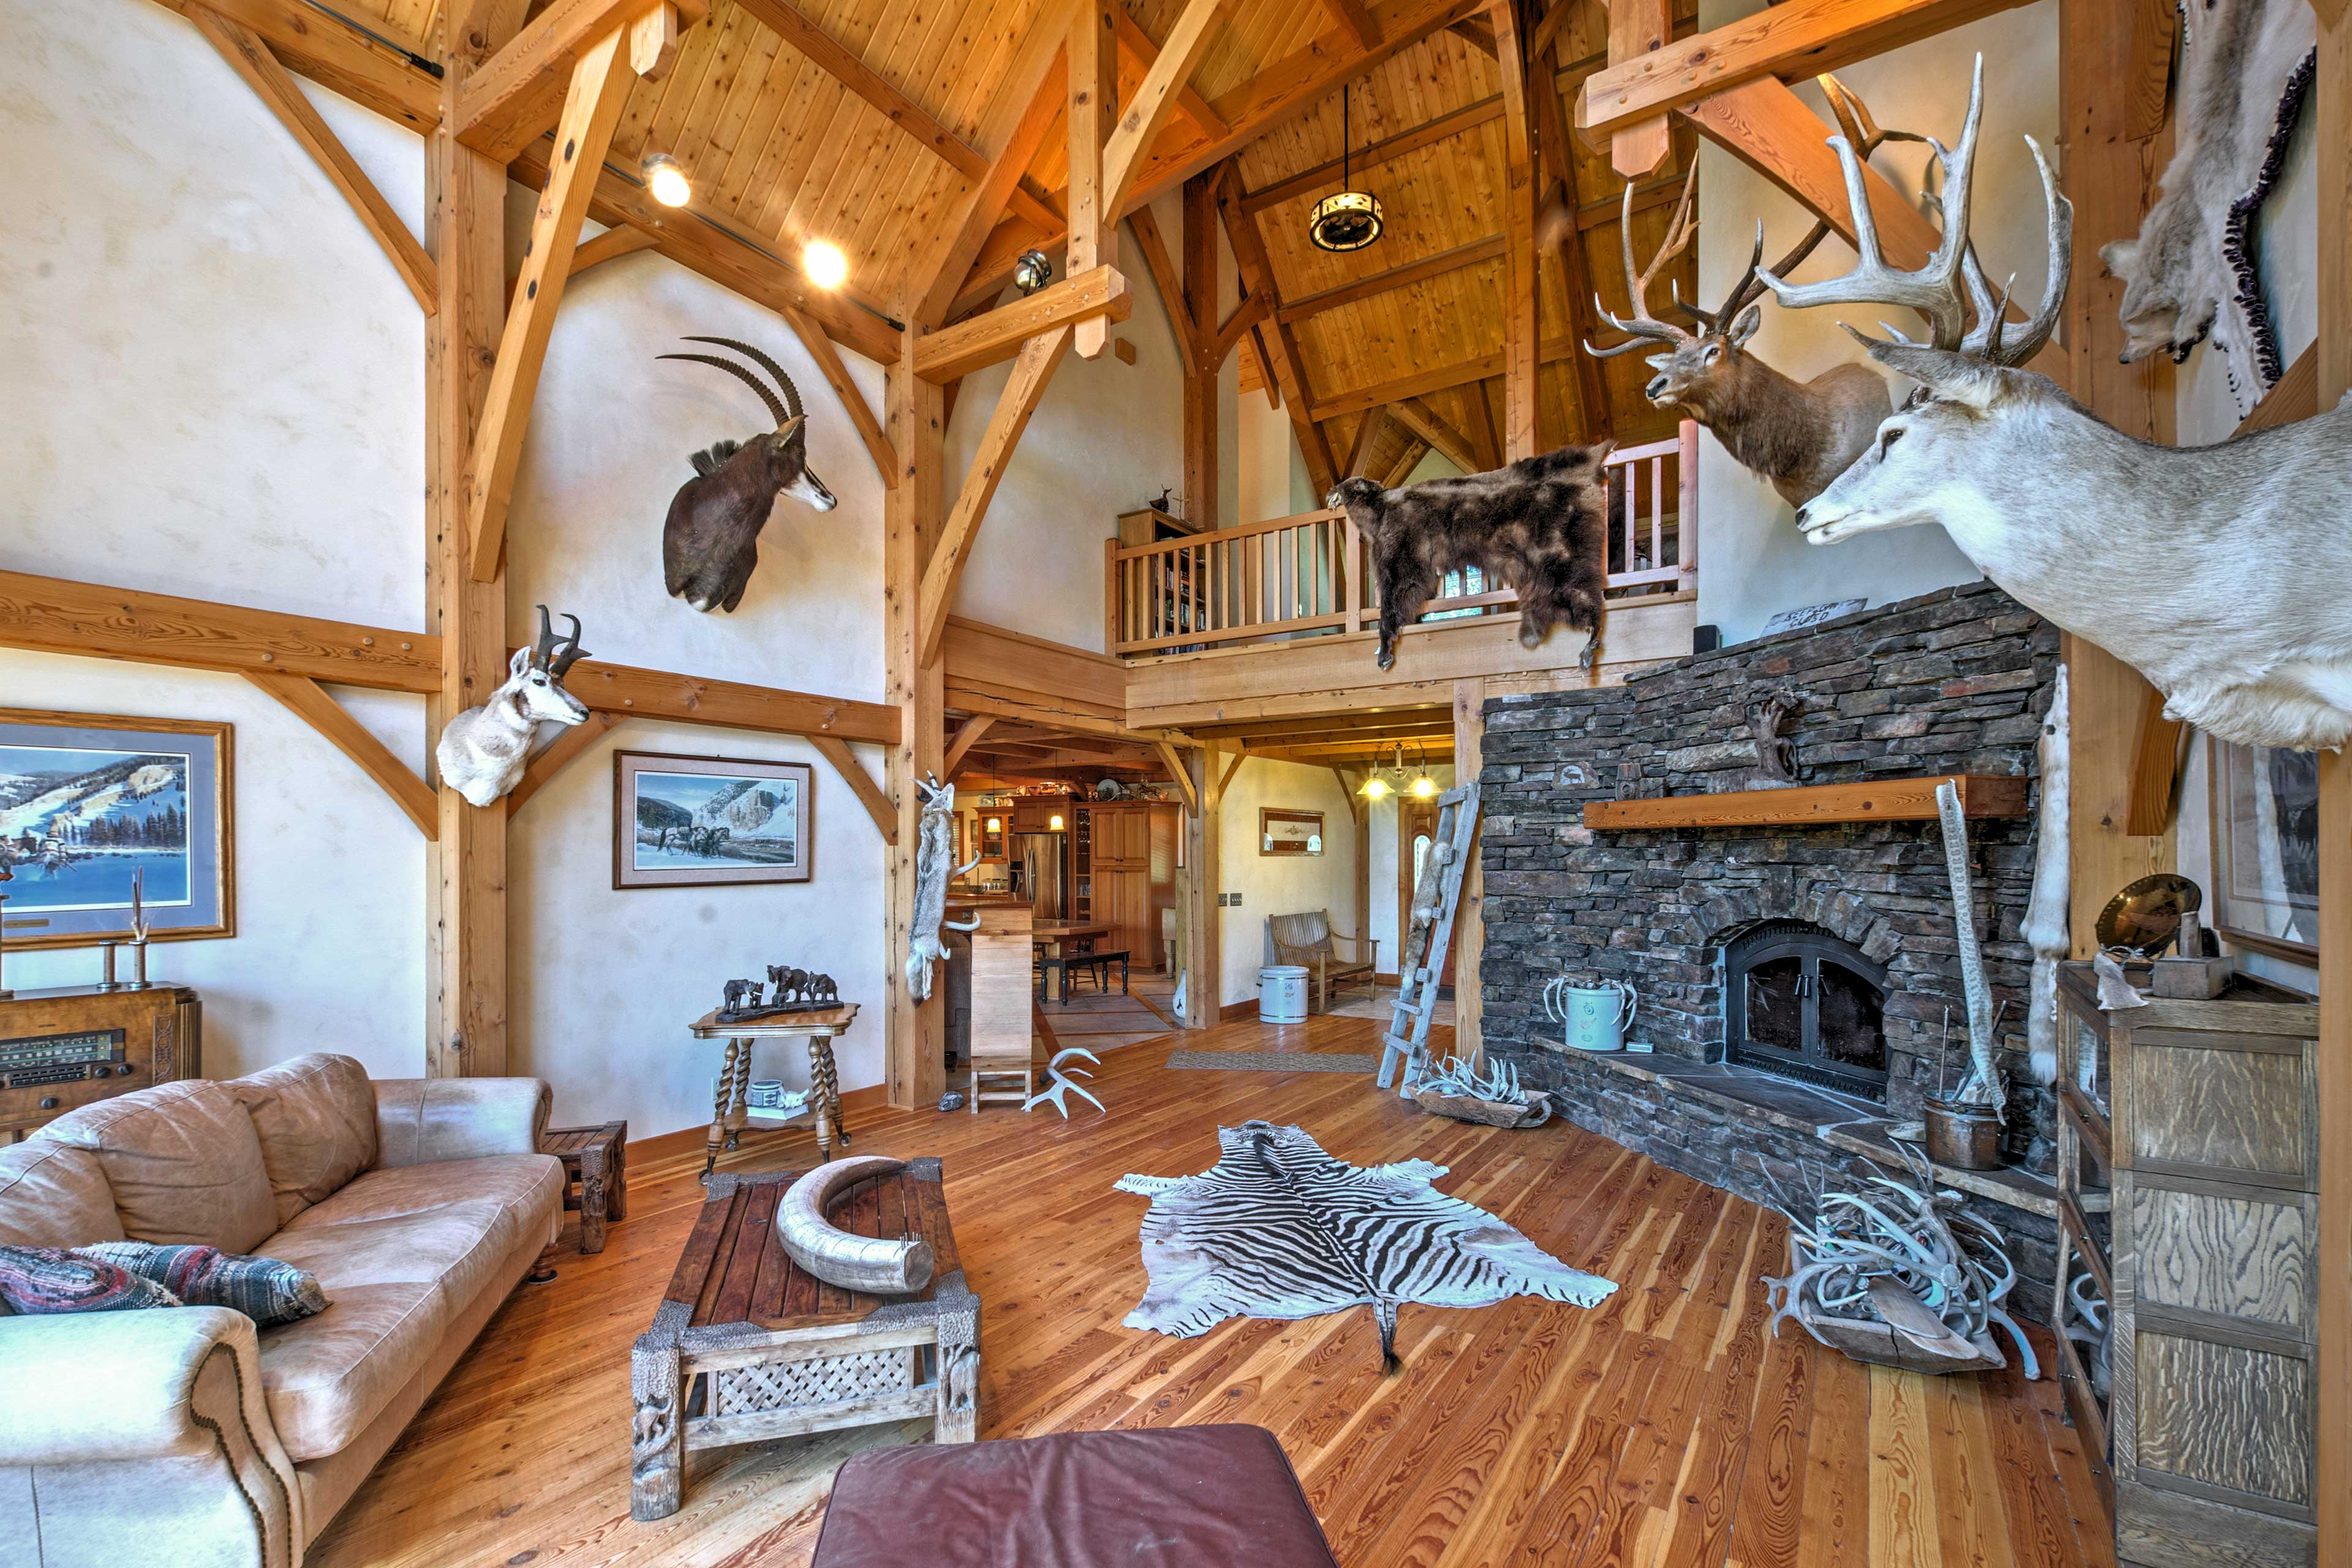 A beautiful timber frame interior creates a hunting lodge atmosphere.